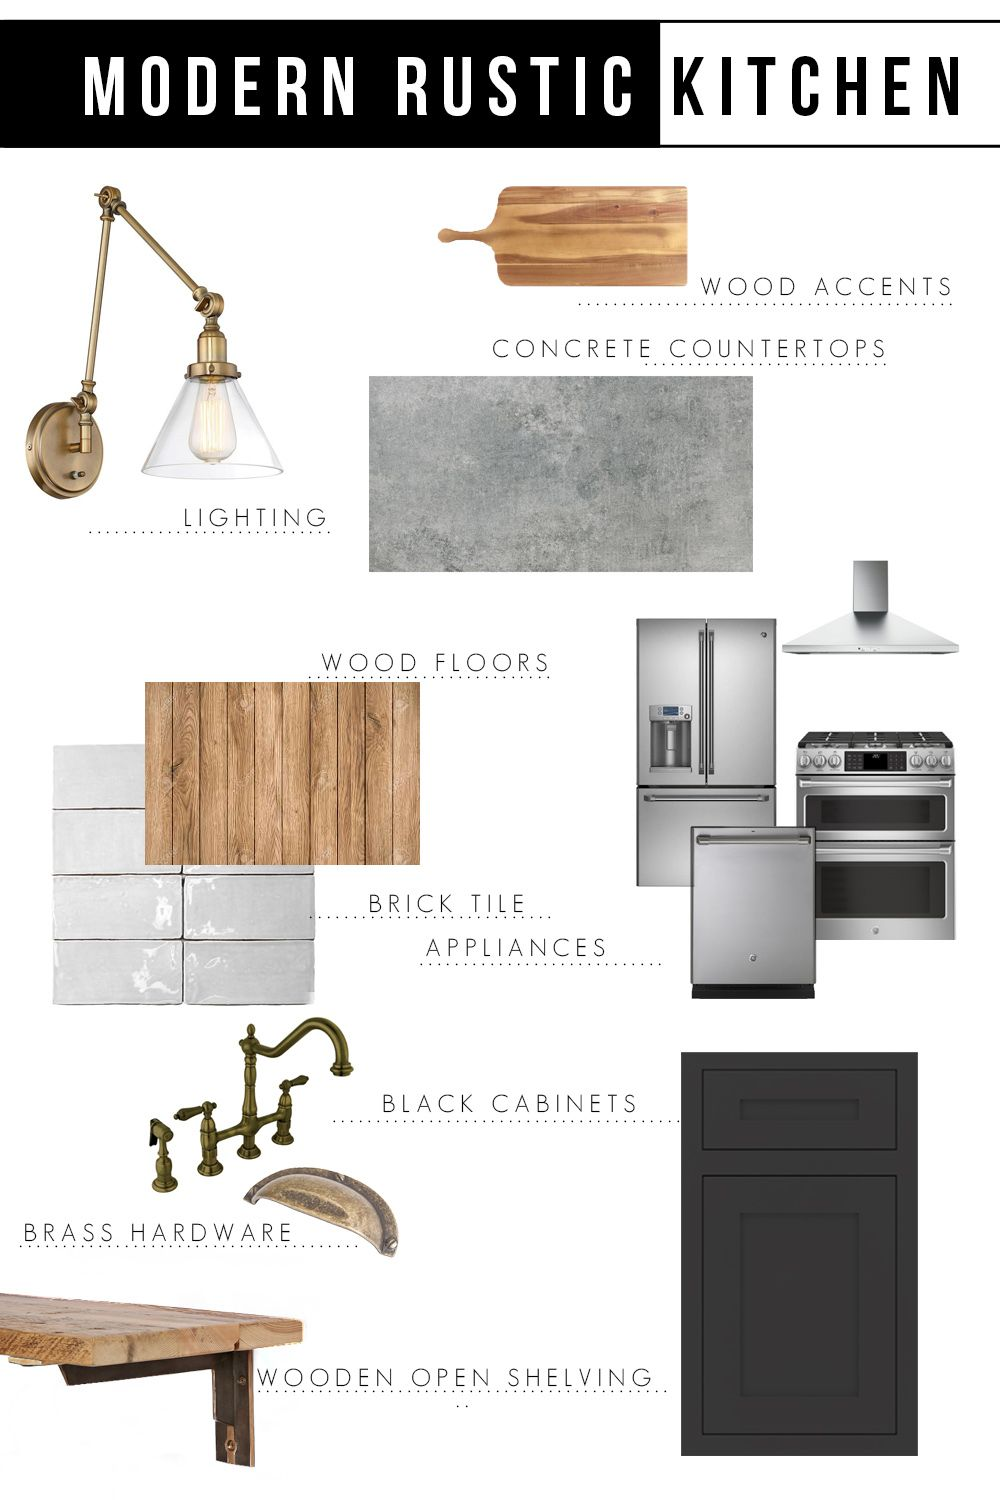 Modern Rustic Kitchen Design Inspiration - Cherished Bliss #rustickitchendesigns